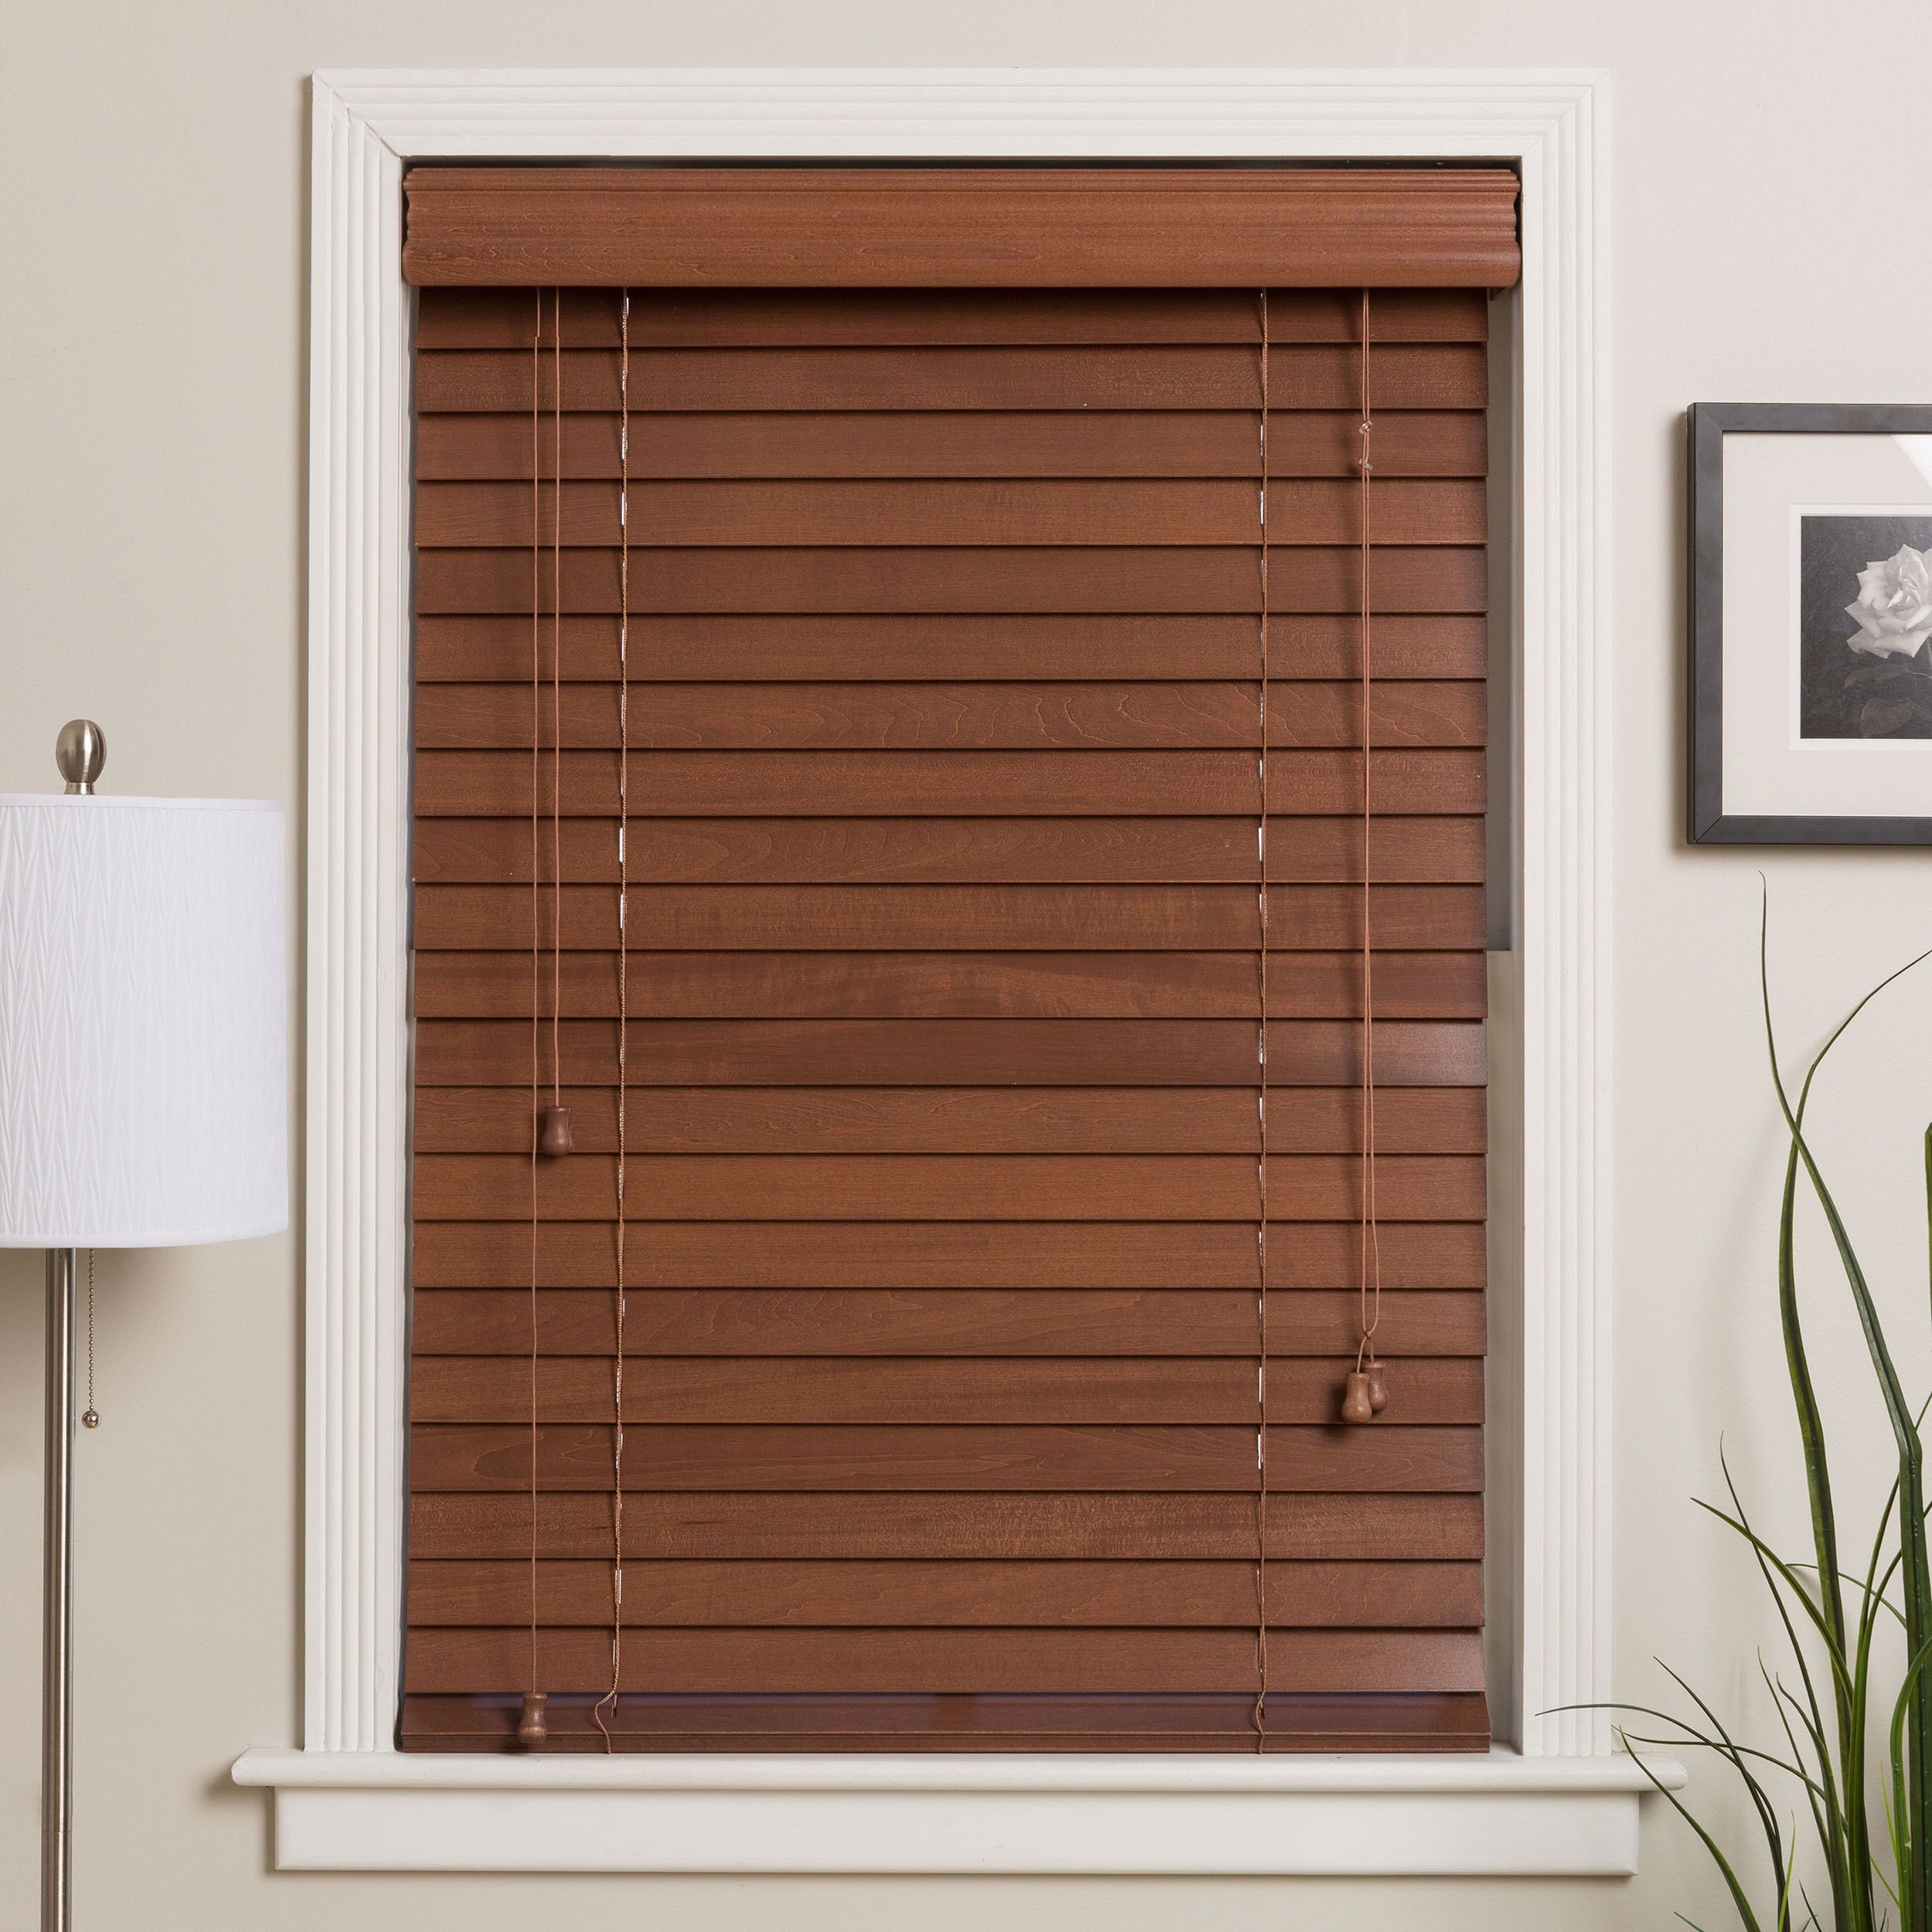 Marvelous Keep The Blinding Sunlight Out Of Your Eyes While You Work By Installing  These Sturdy Wood